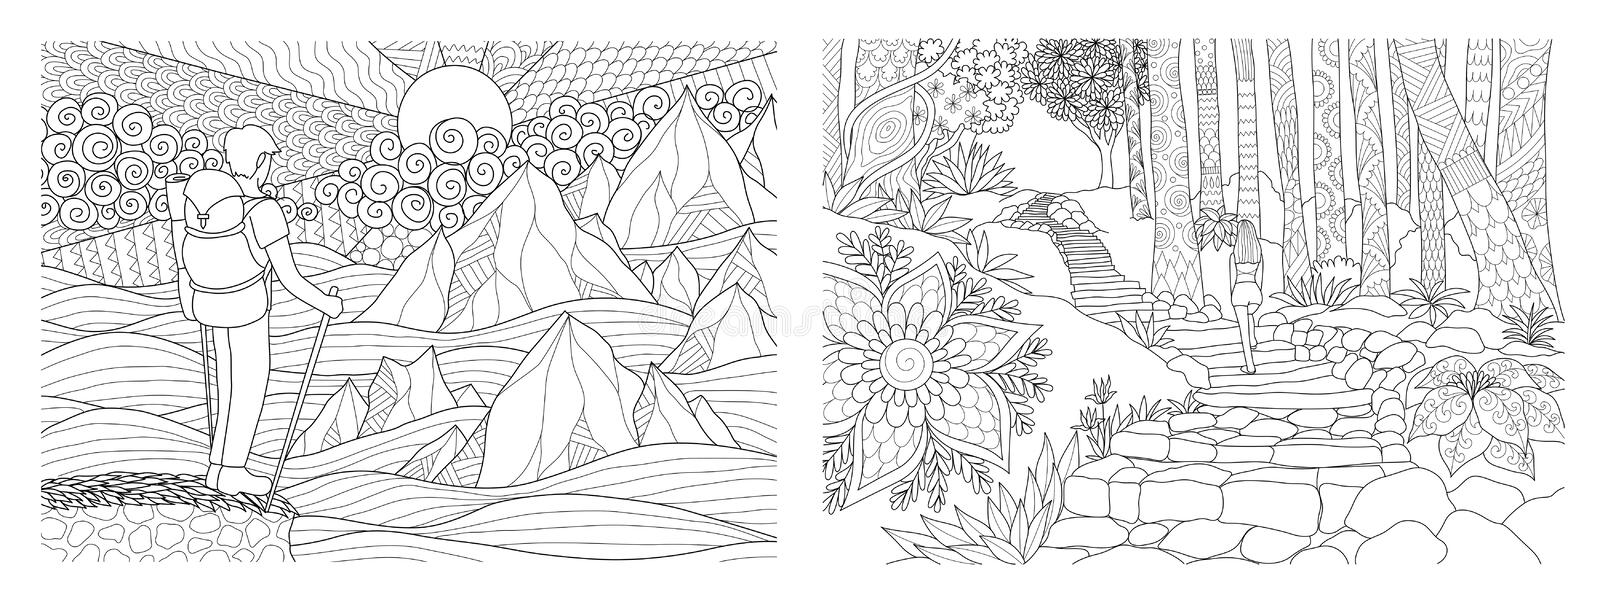 Coloring Pages for Adults - Free Printables – Faber-Castell USA | 301x800